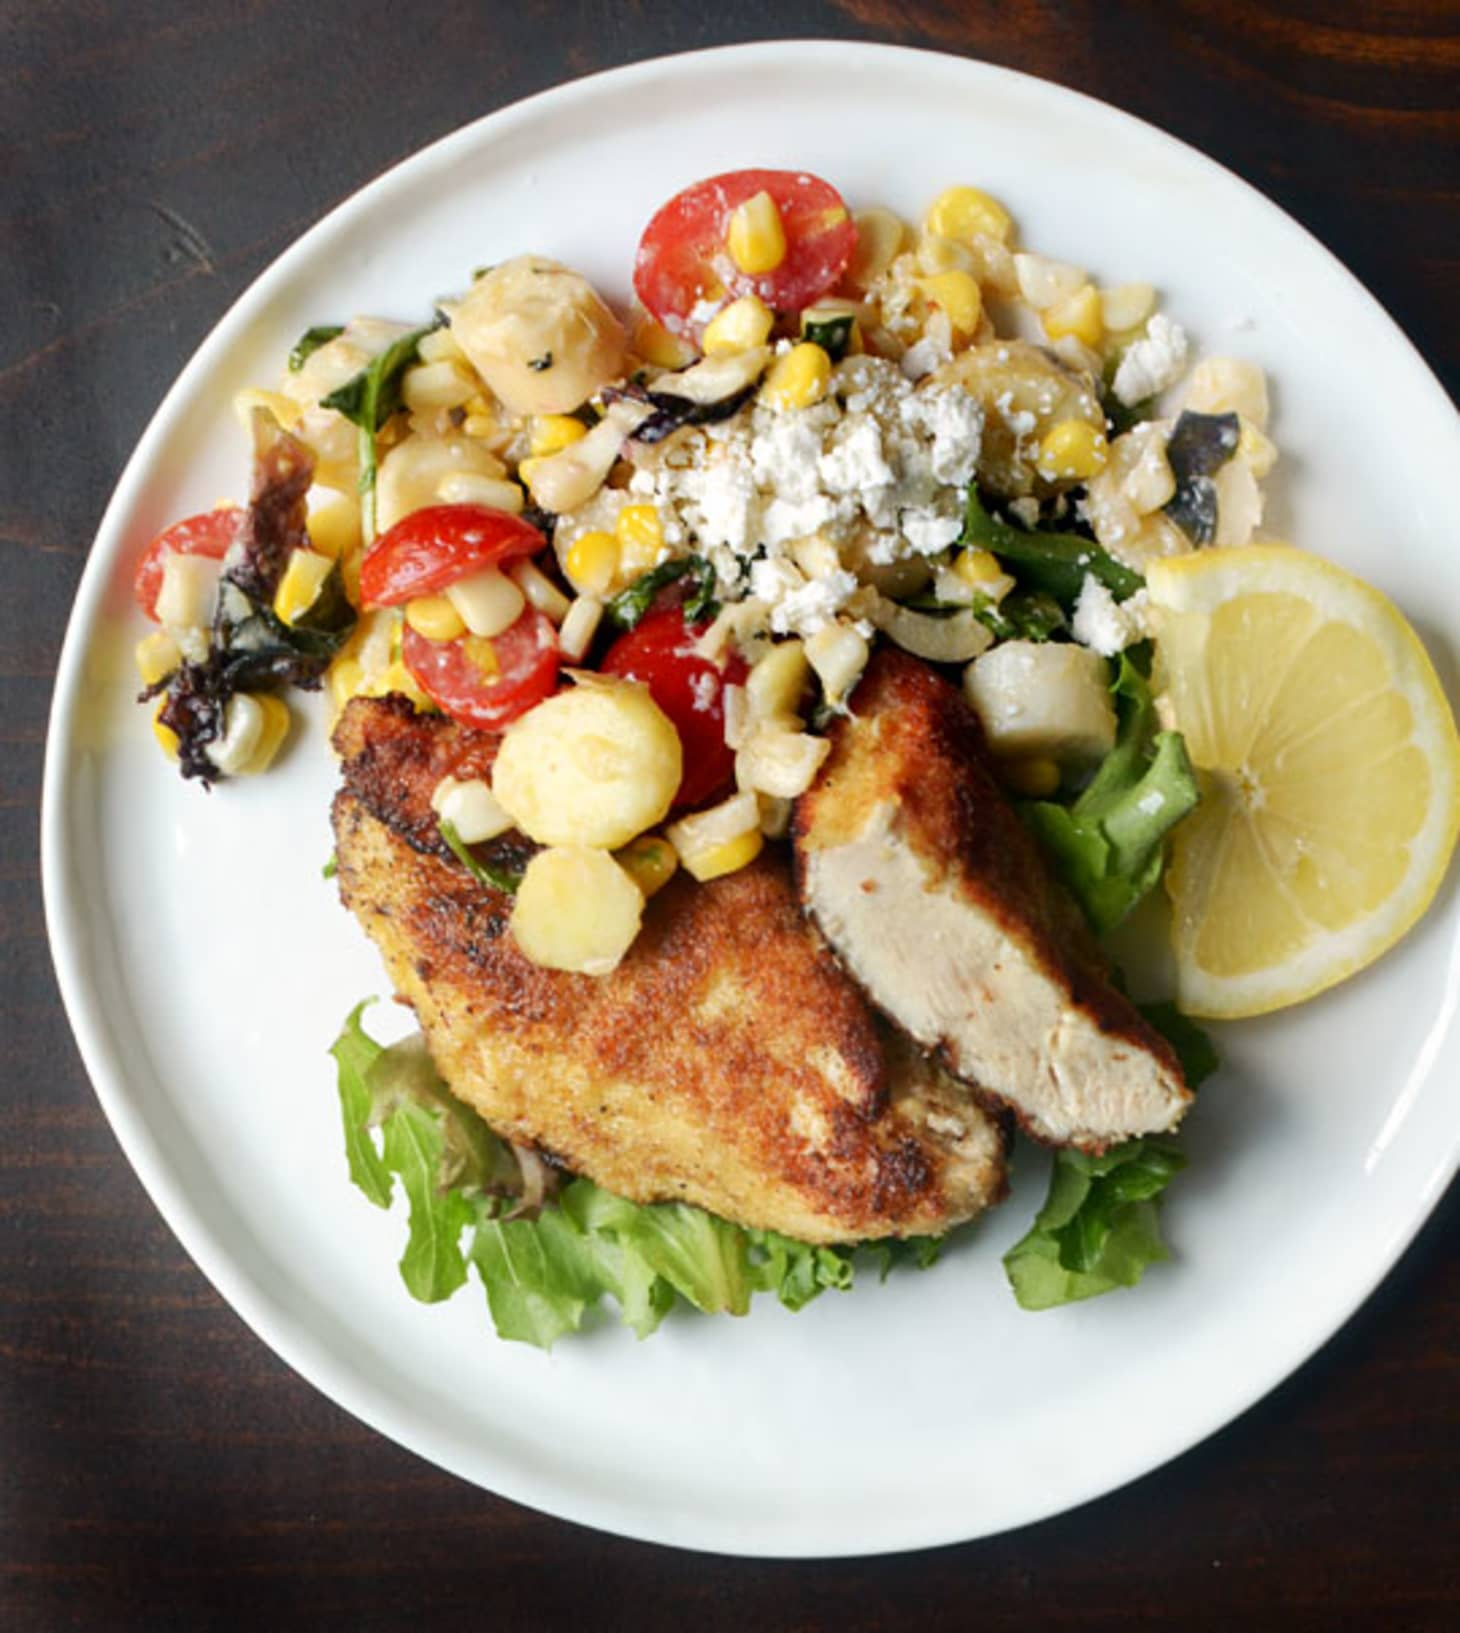 Weeknight Recipe: Pan-Fried Chicken Breasts With Corn